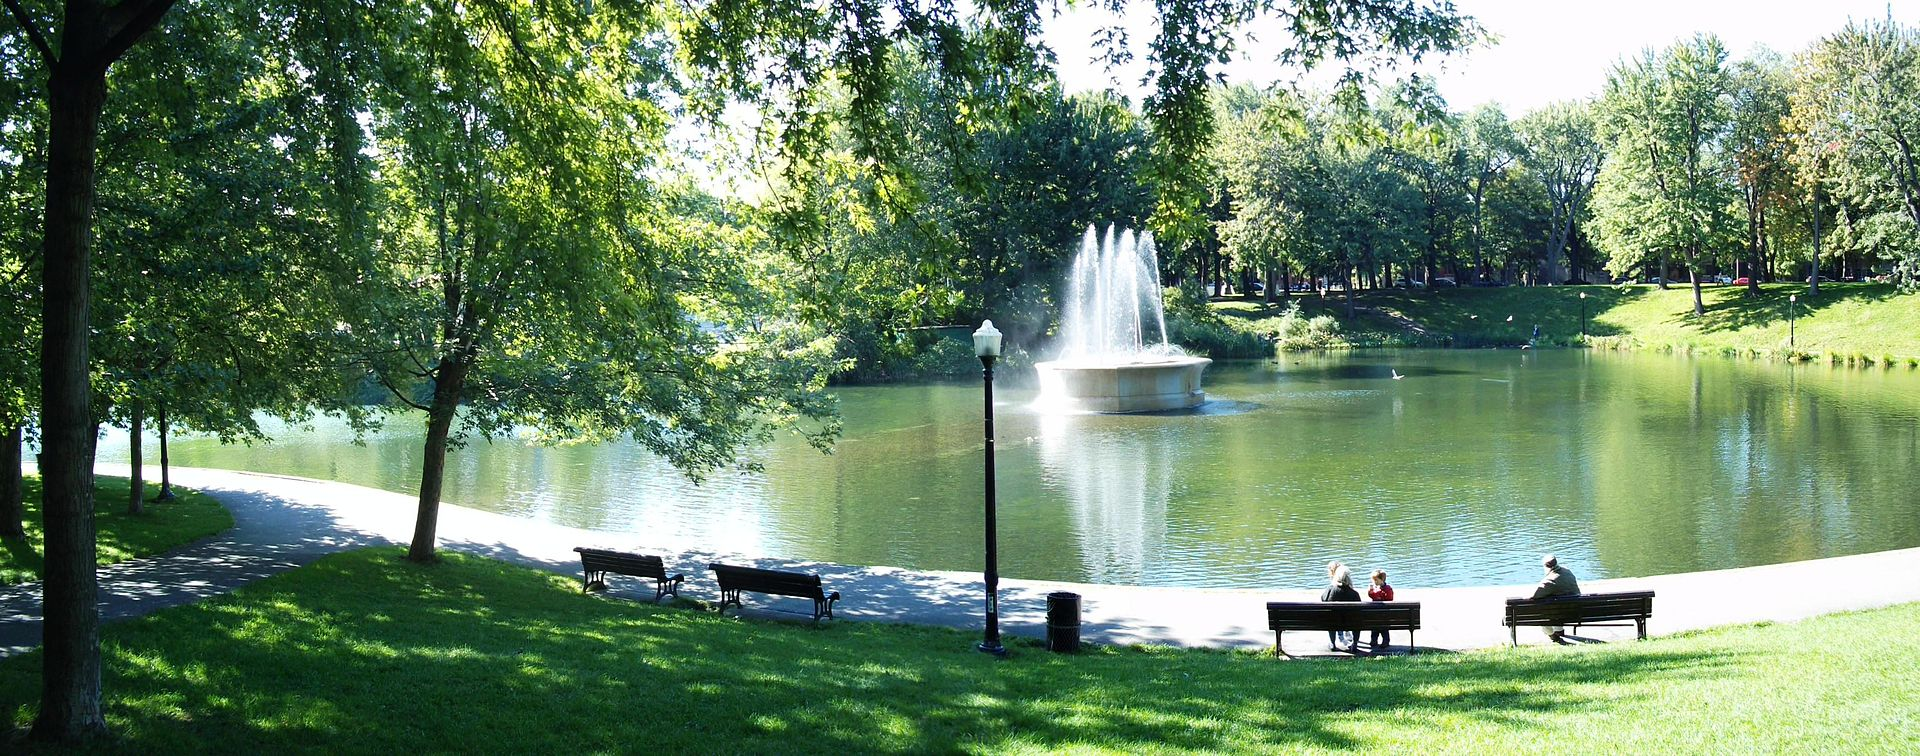 fountain and tranquil pond setting at La Fontaine Park, Montreal